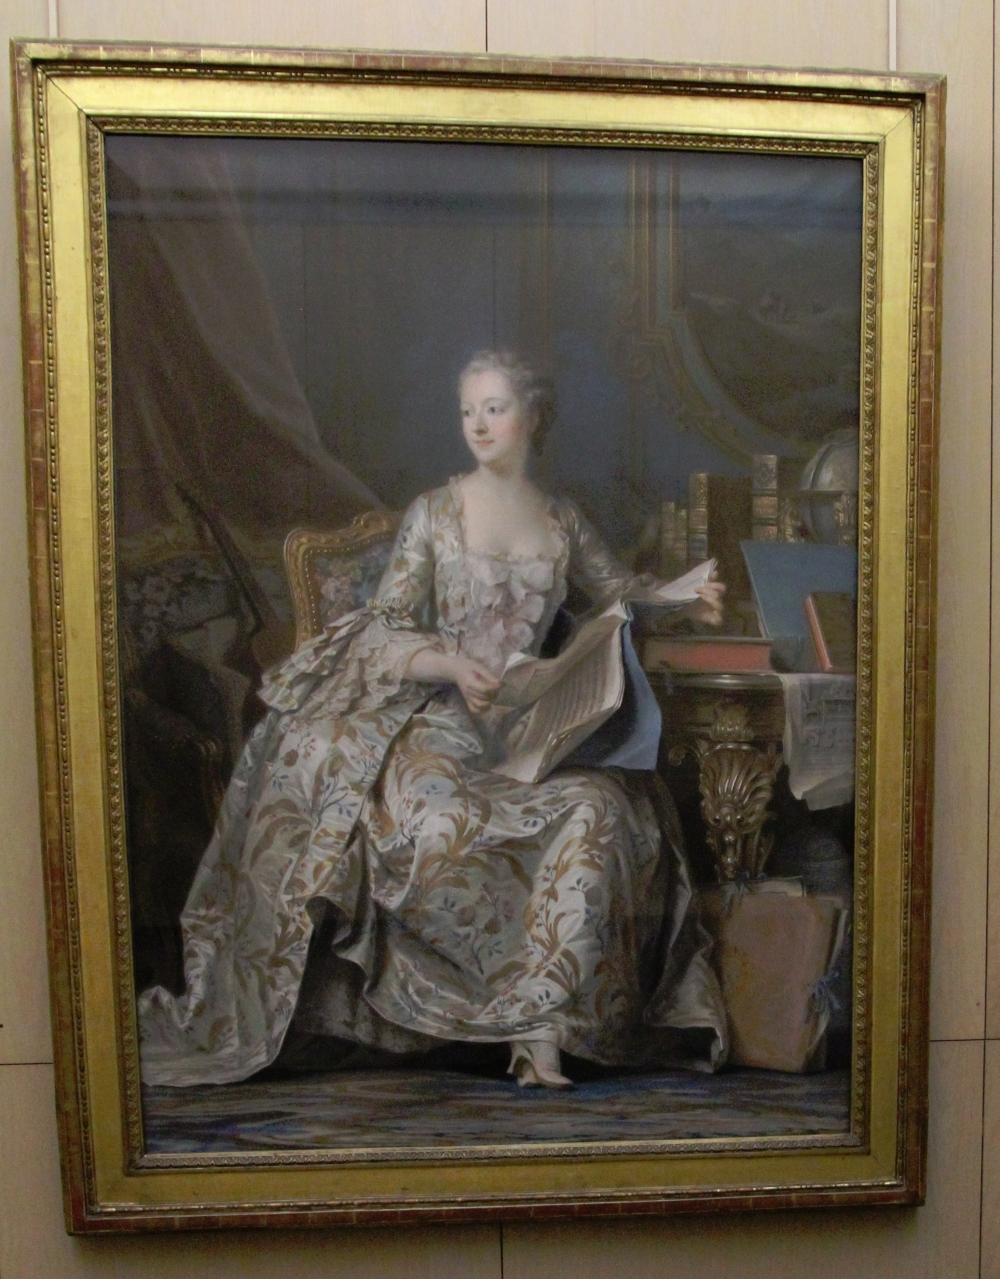 Madame Pompadour by de la Tour at the Louvre